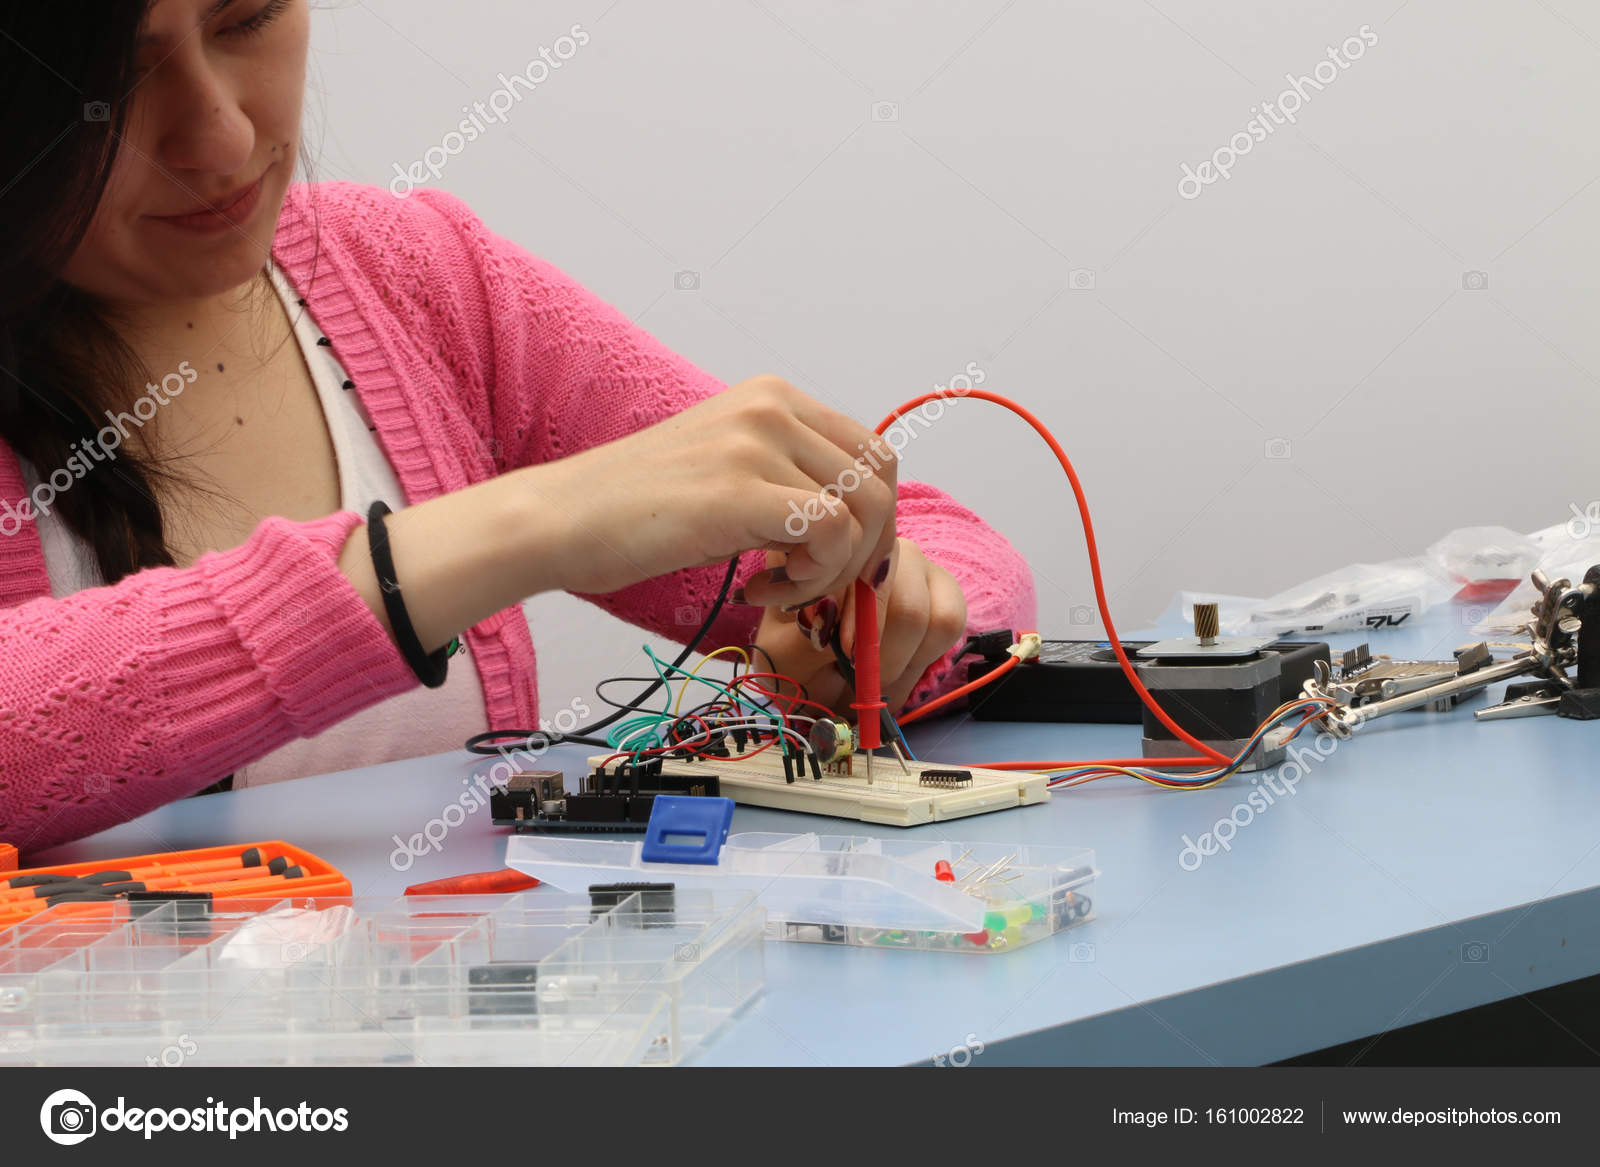 Tech Student Learning Wire Prototype Printed Circuit Board Stock How To Without Using Boards Photo